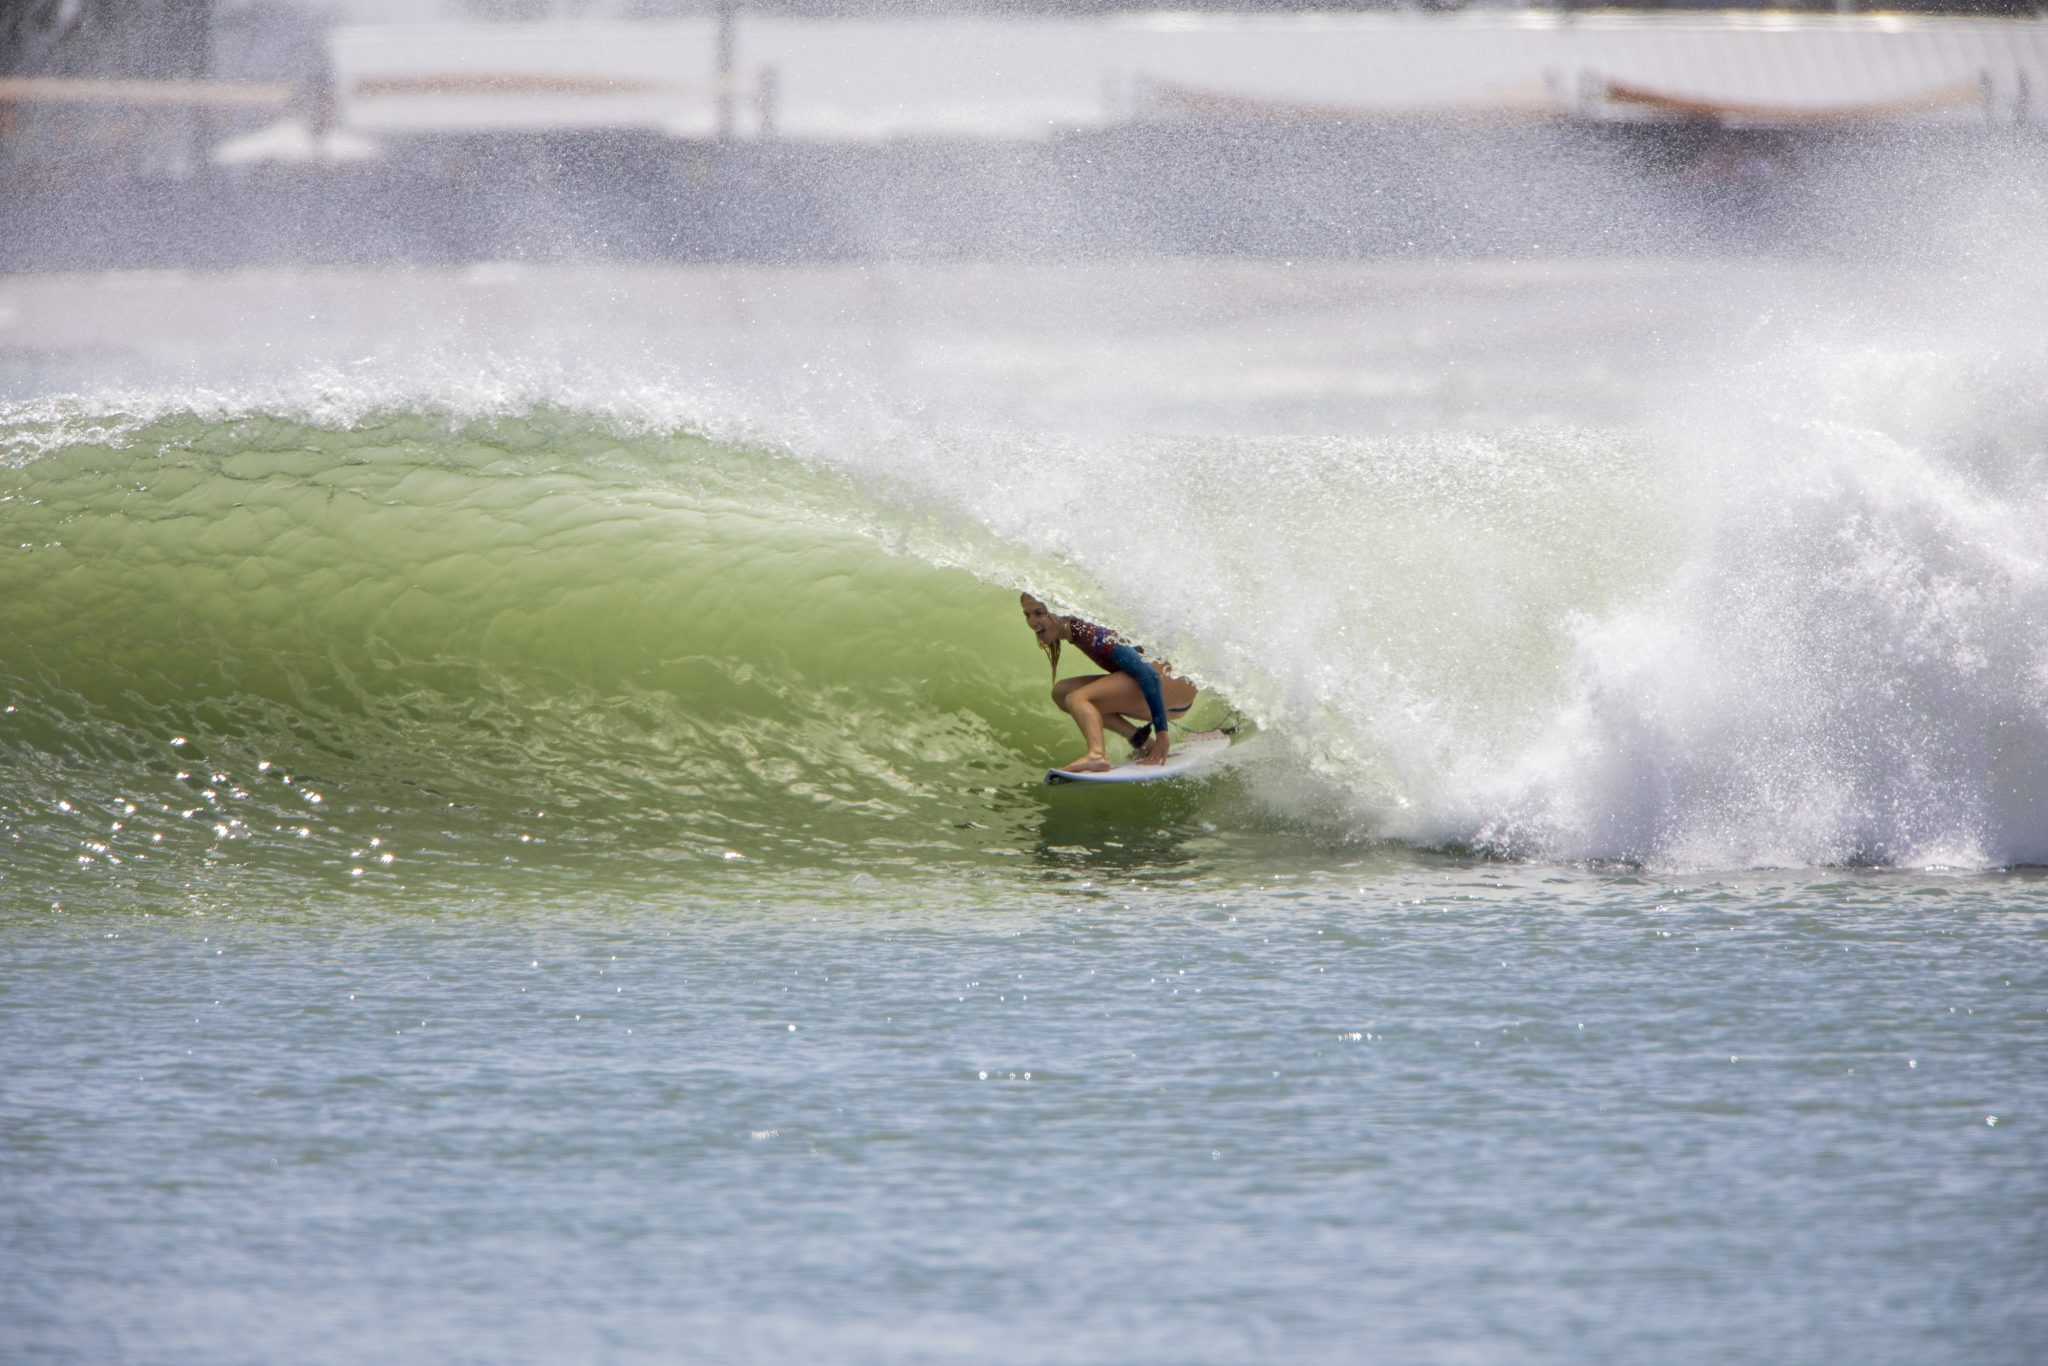 WSL Holds Groundbreaking Test Event at Kelly Slater s Surf Ranch